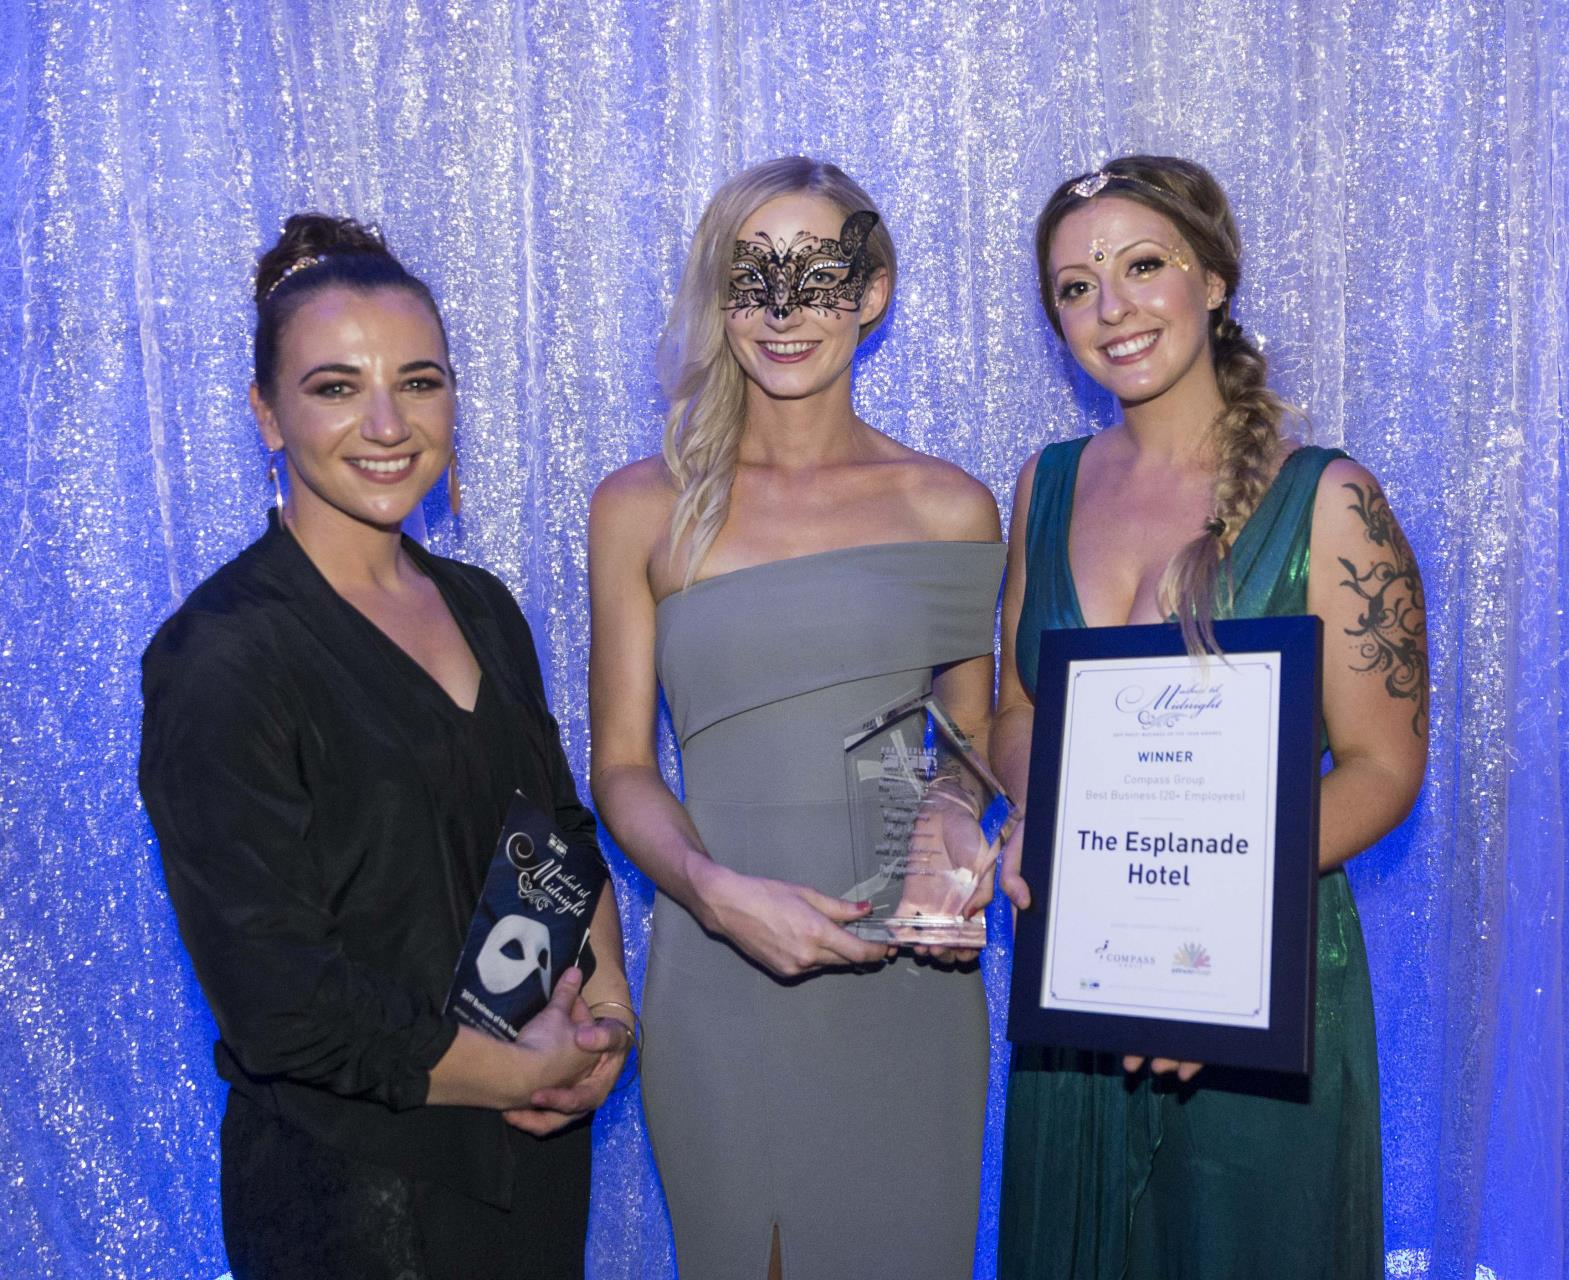 WINNER: Chamber of Commerce Business Awards